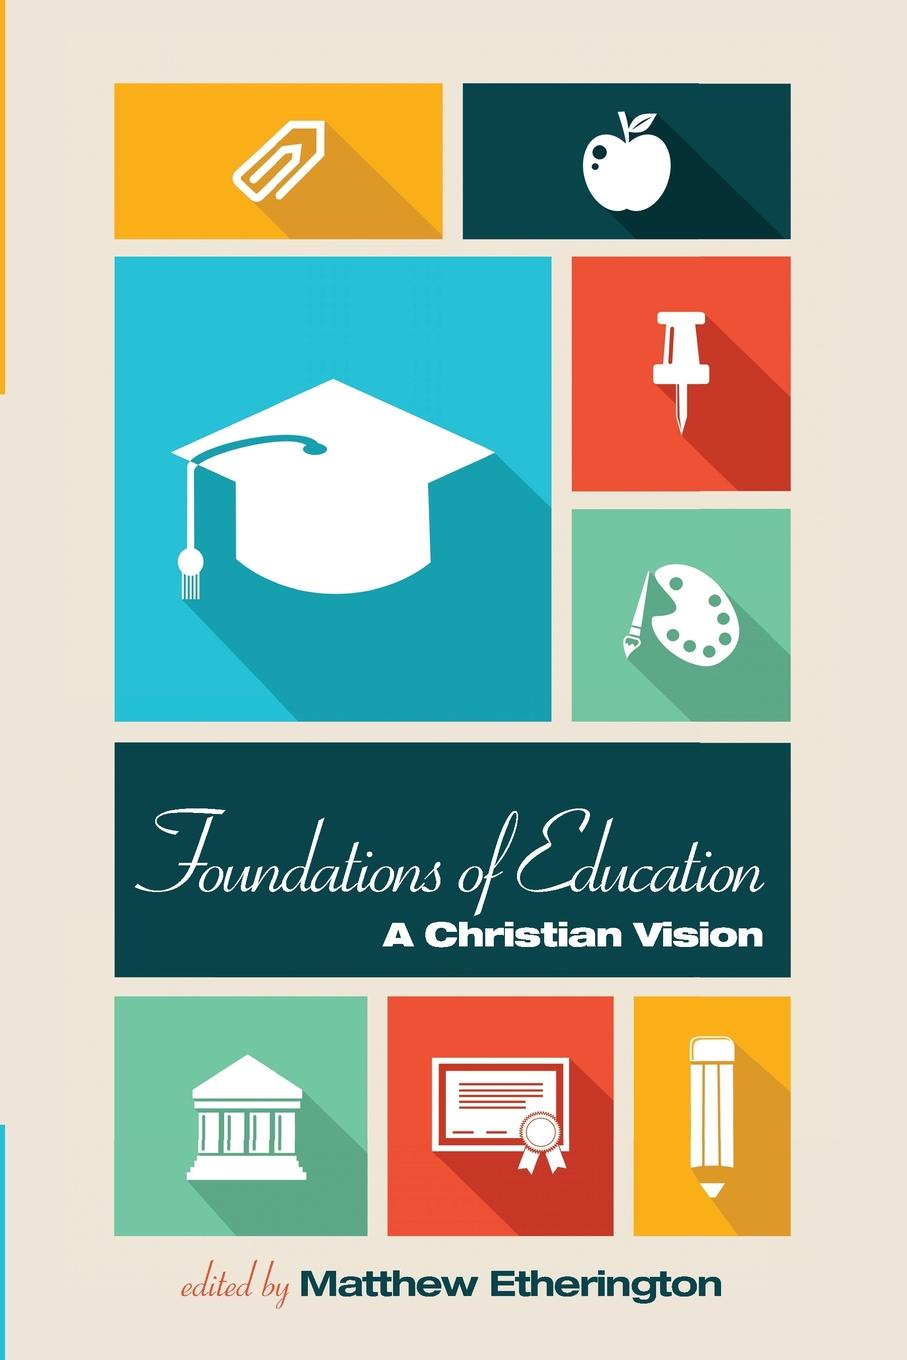 Foundations of Education. A Christian Vision thomas h groome christian religious education sharing our story and vision